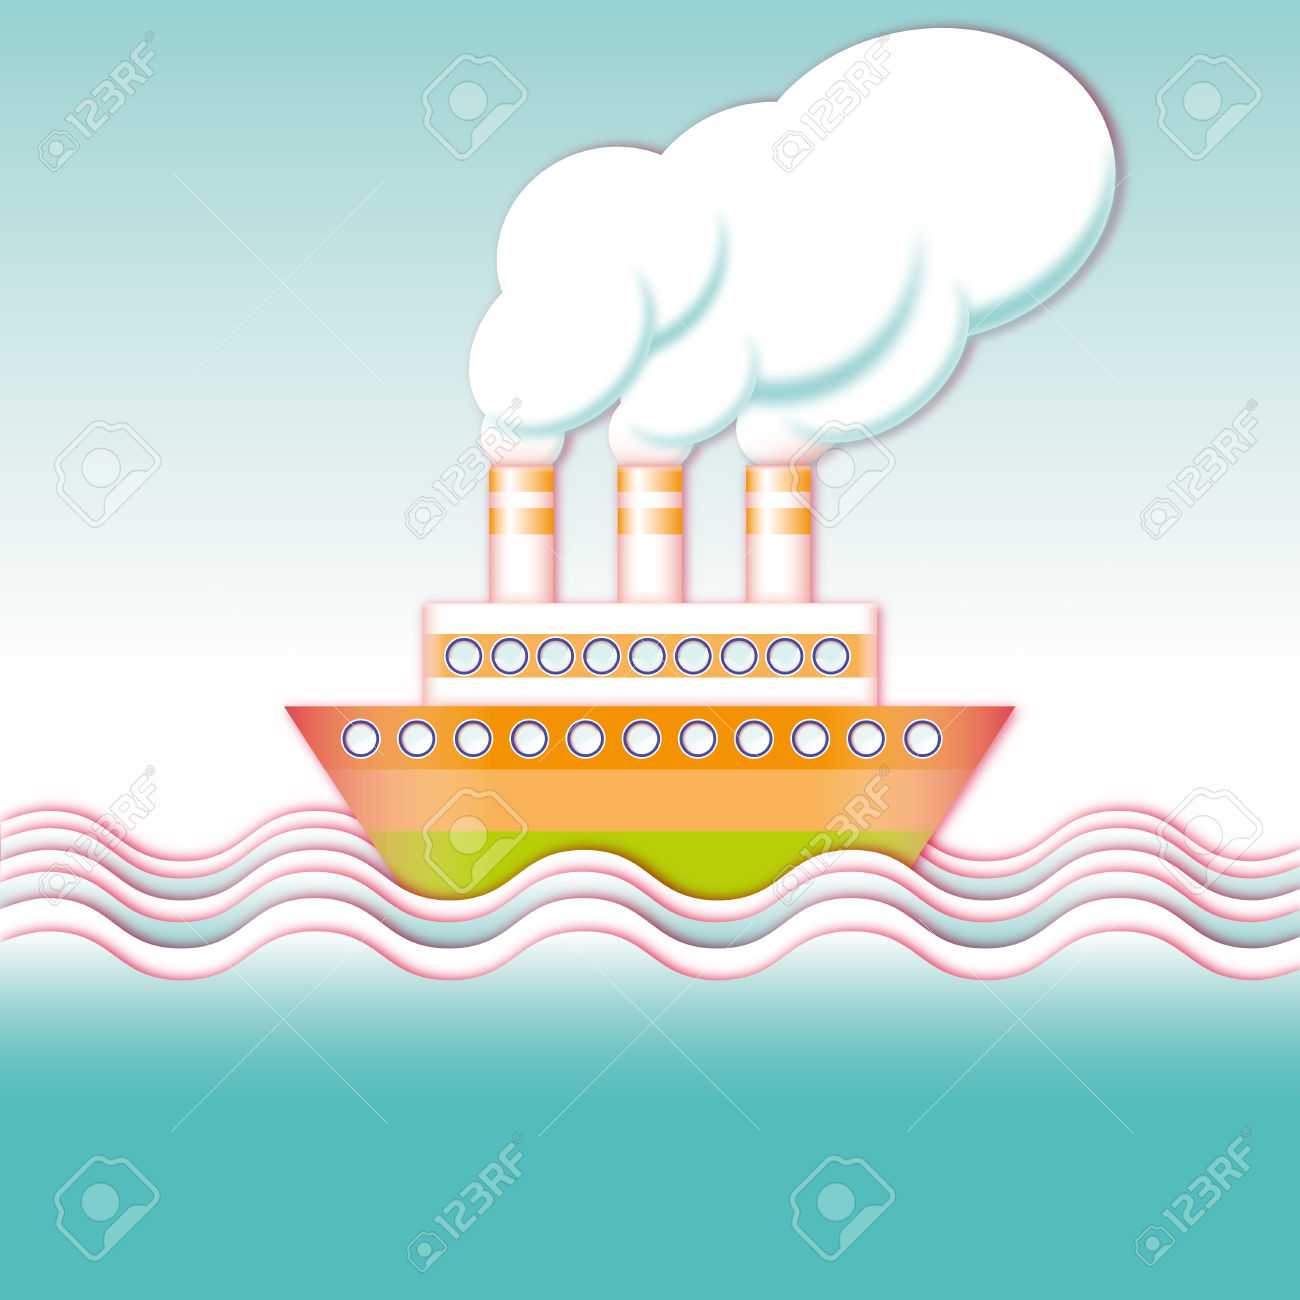 Summer Excursion Steamer Cruise On The Ocean Waves Royalty Free.